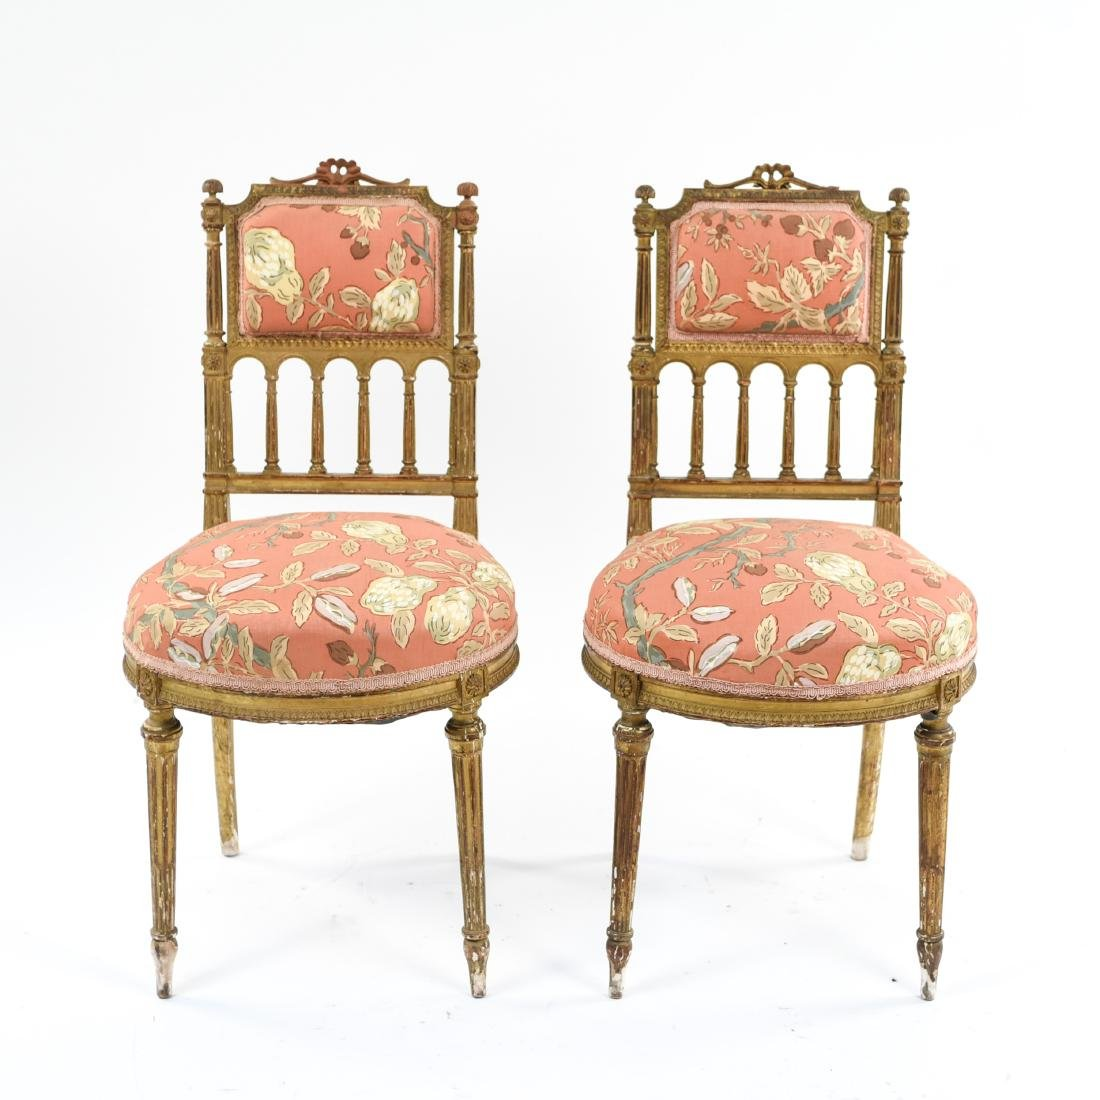 PAIR OF SMALL GILT FRENCH CHAIRS